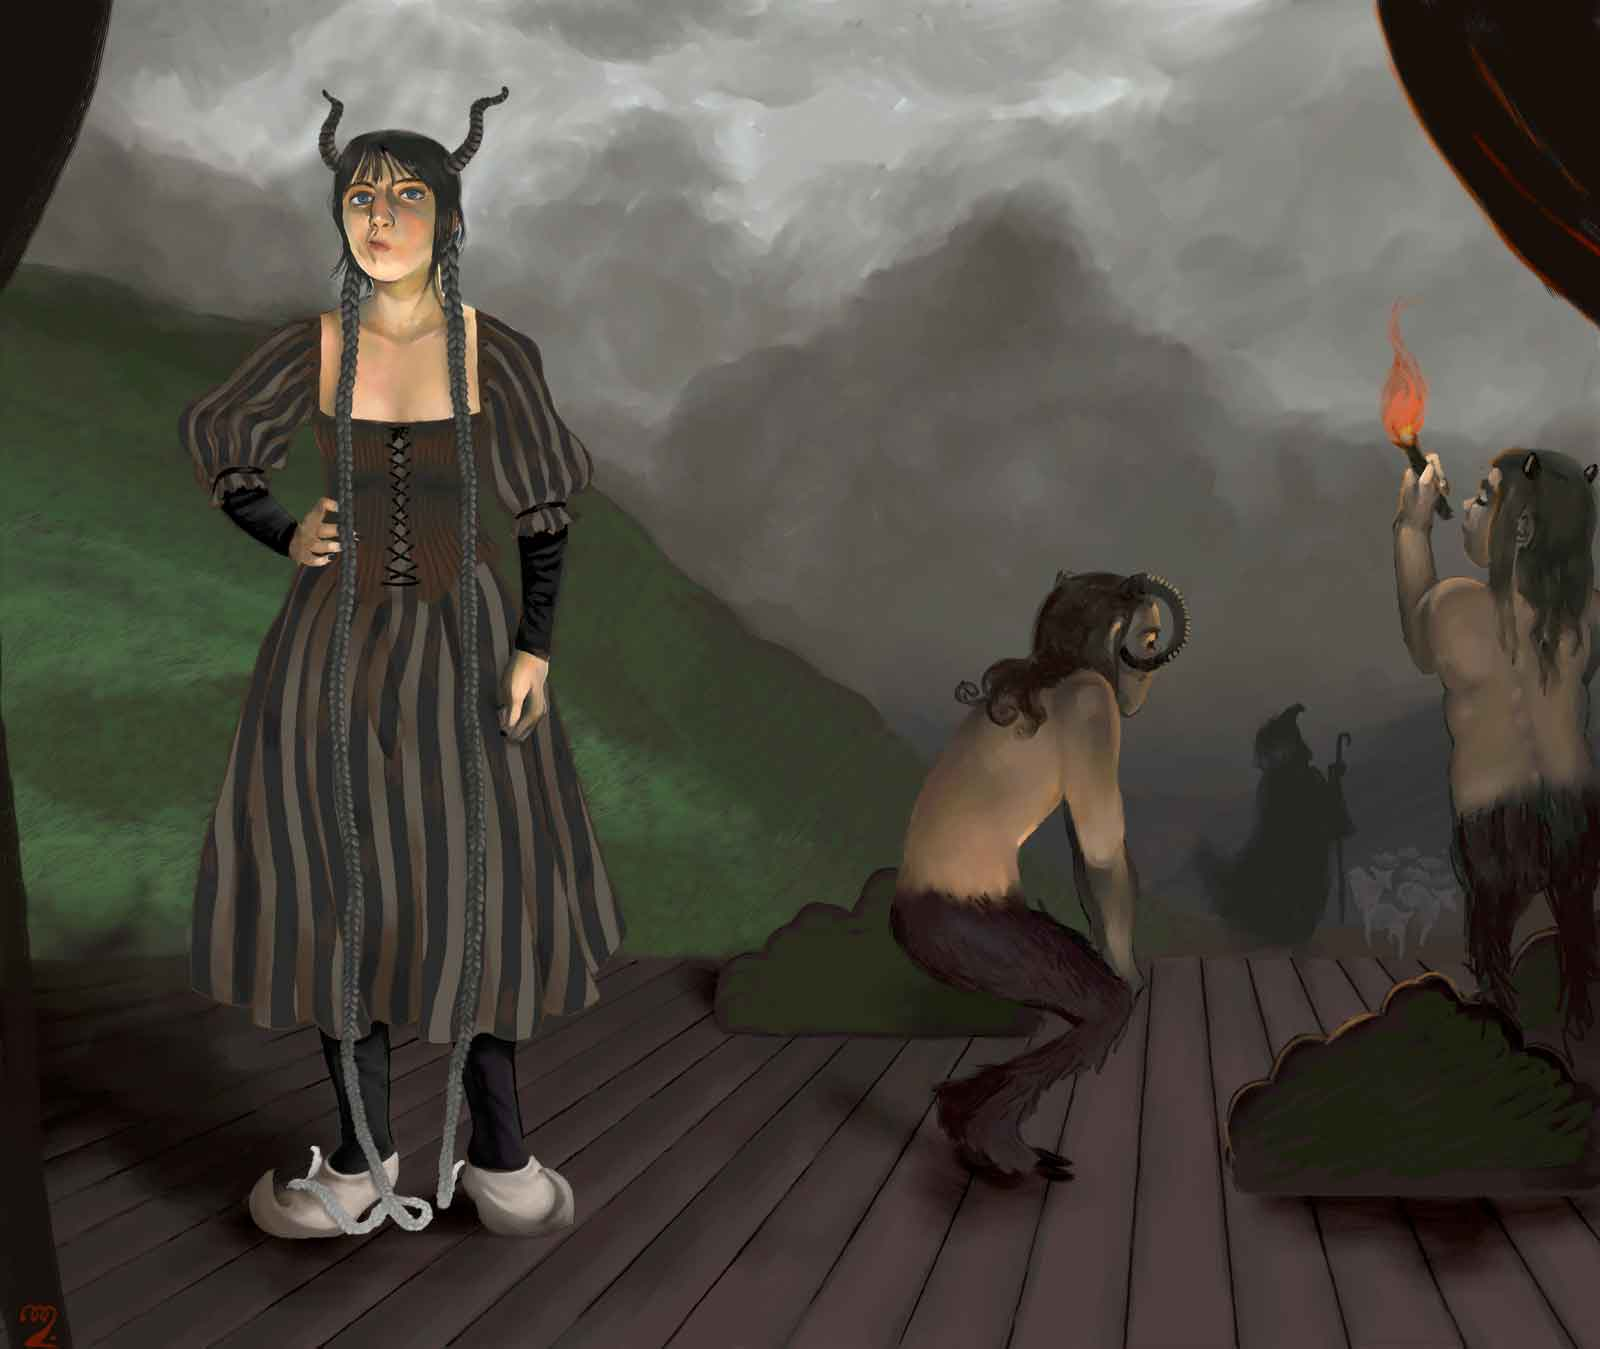 Surreal painting of a theatre stage with a shepherd coming on straight from the painting of the background, watched by two fauns and with a grey-haired girl standing on the left.